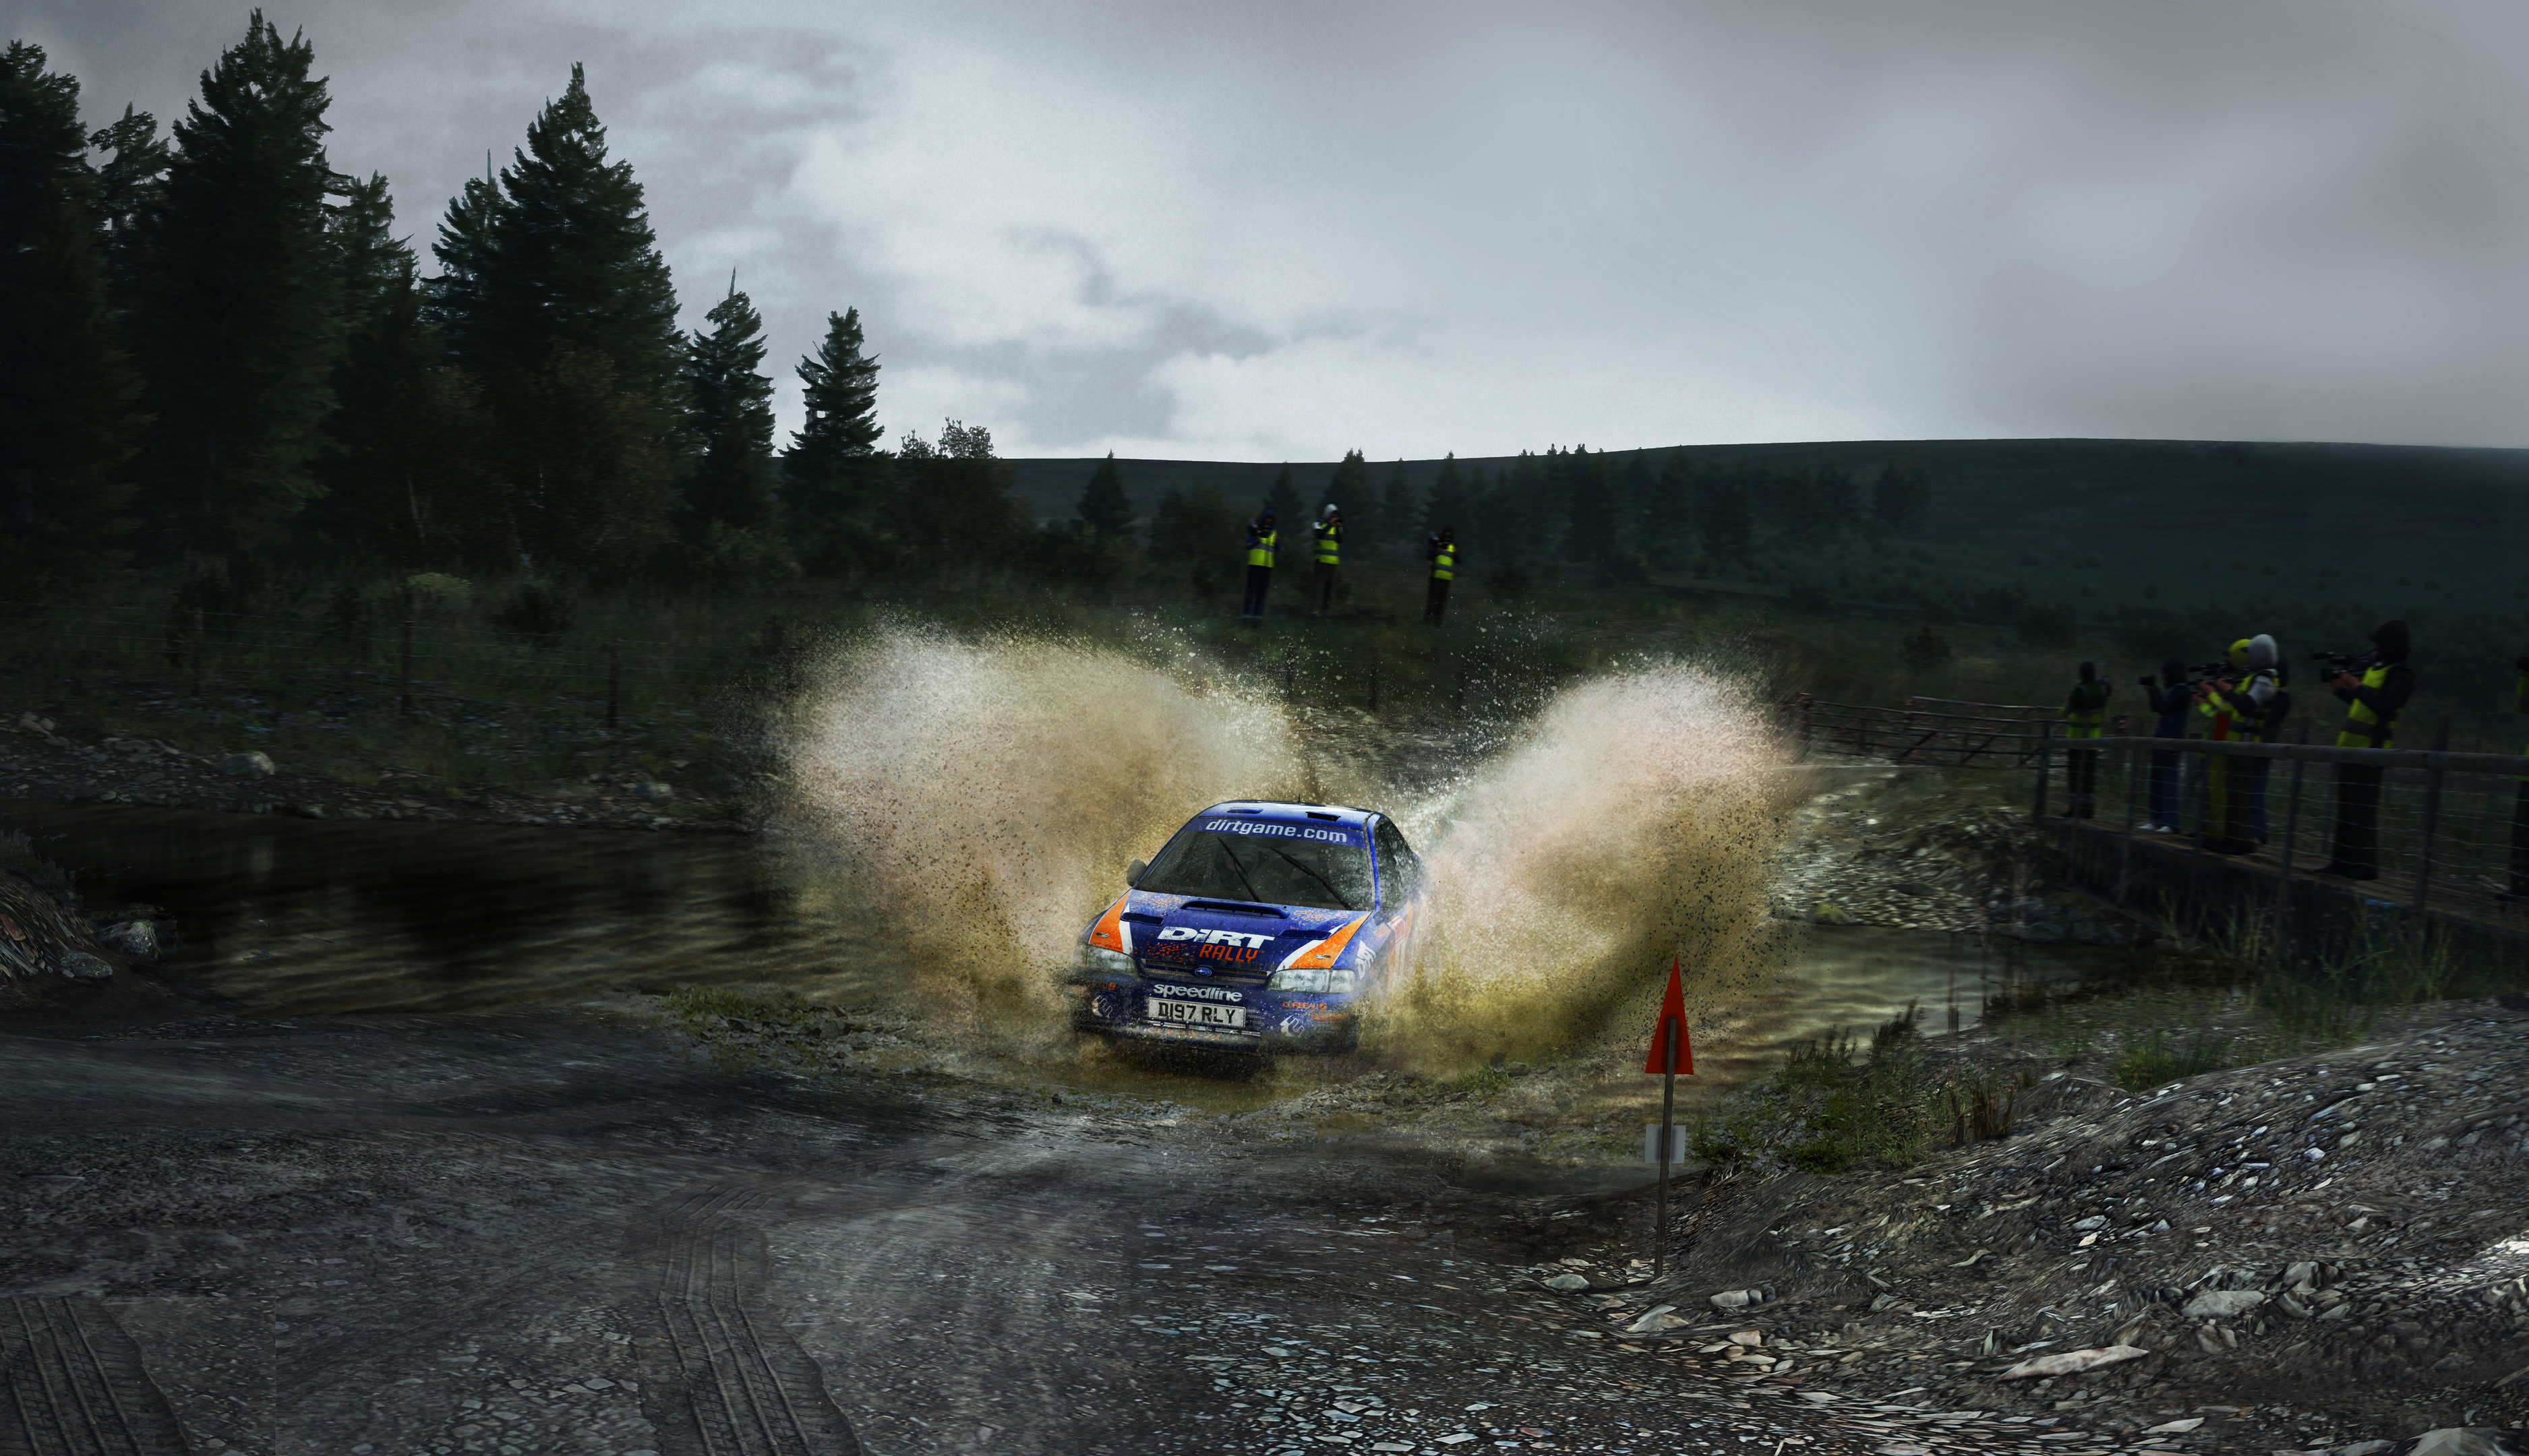 dirt rally full hd wallpaper and background image | 3751x2160 | id